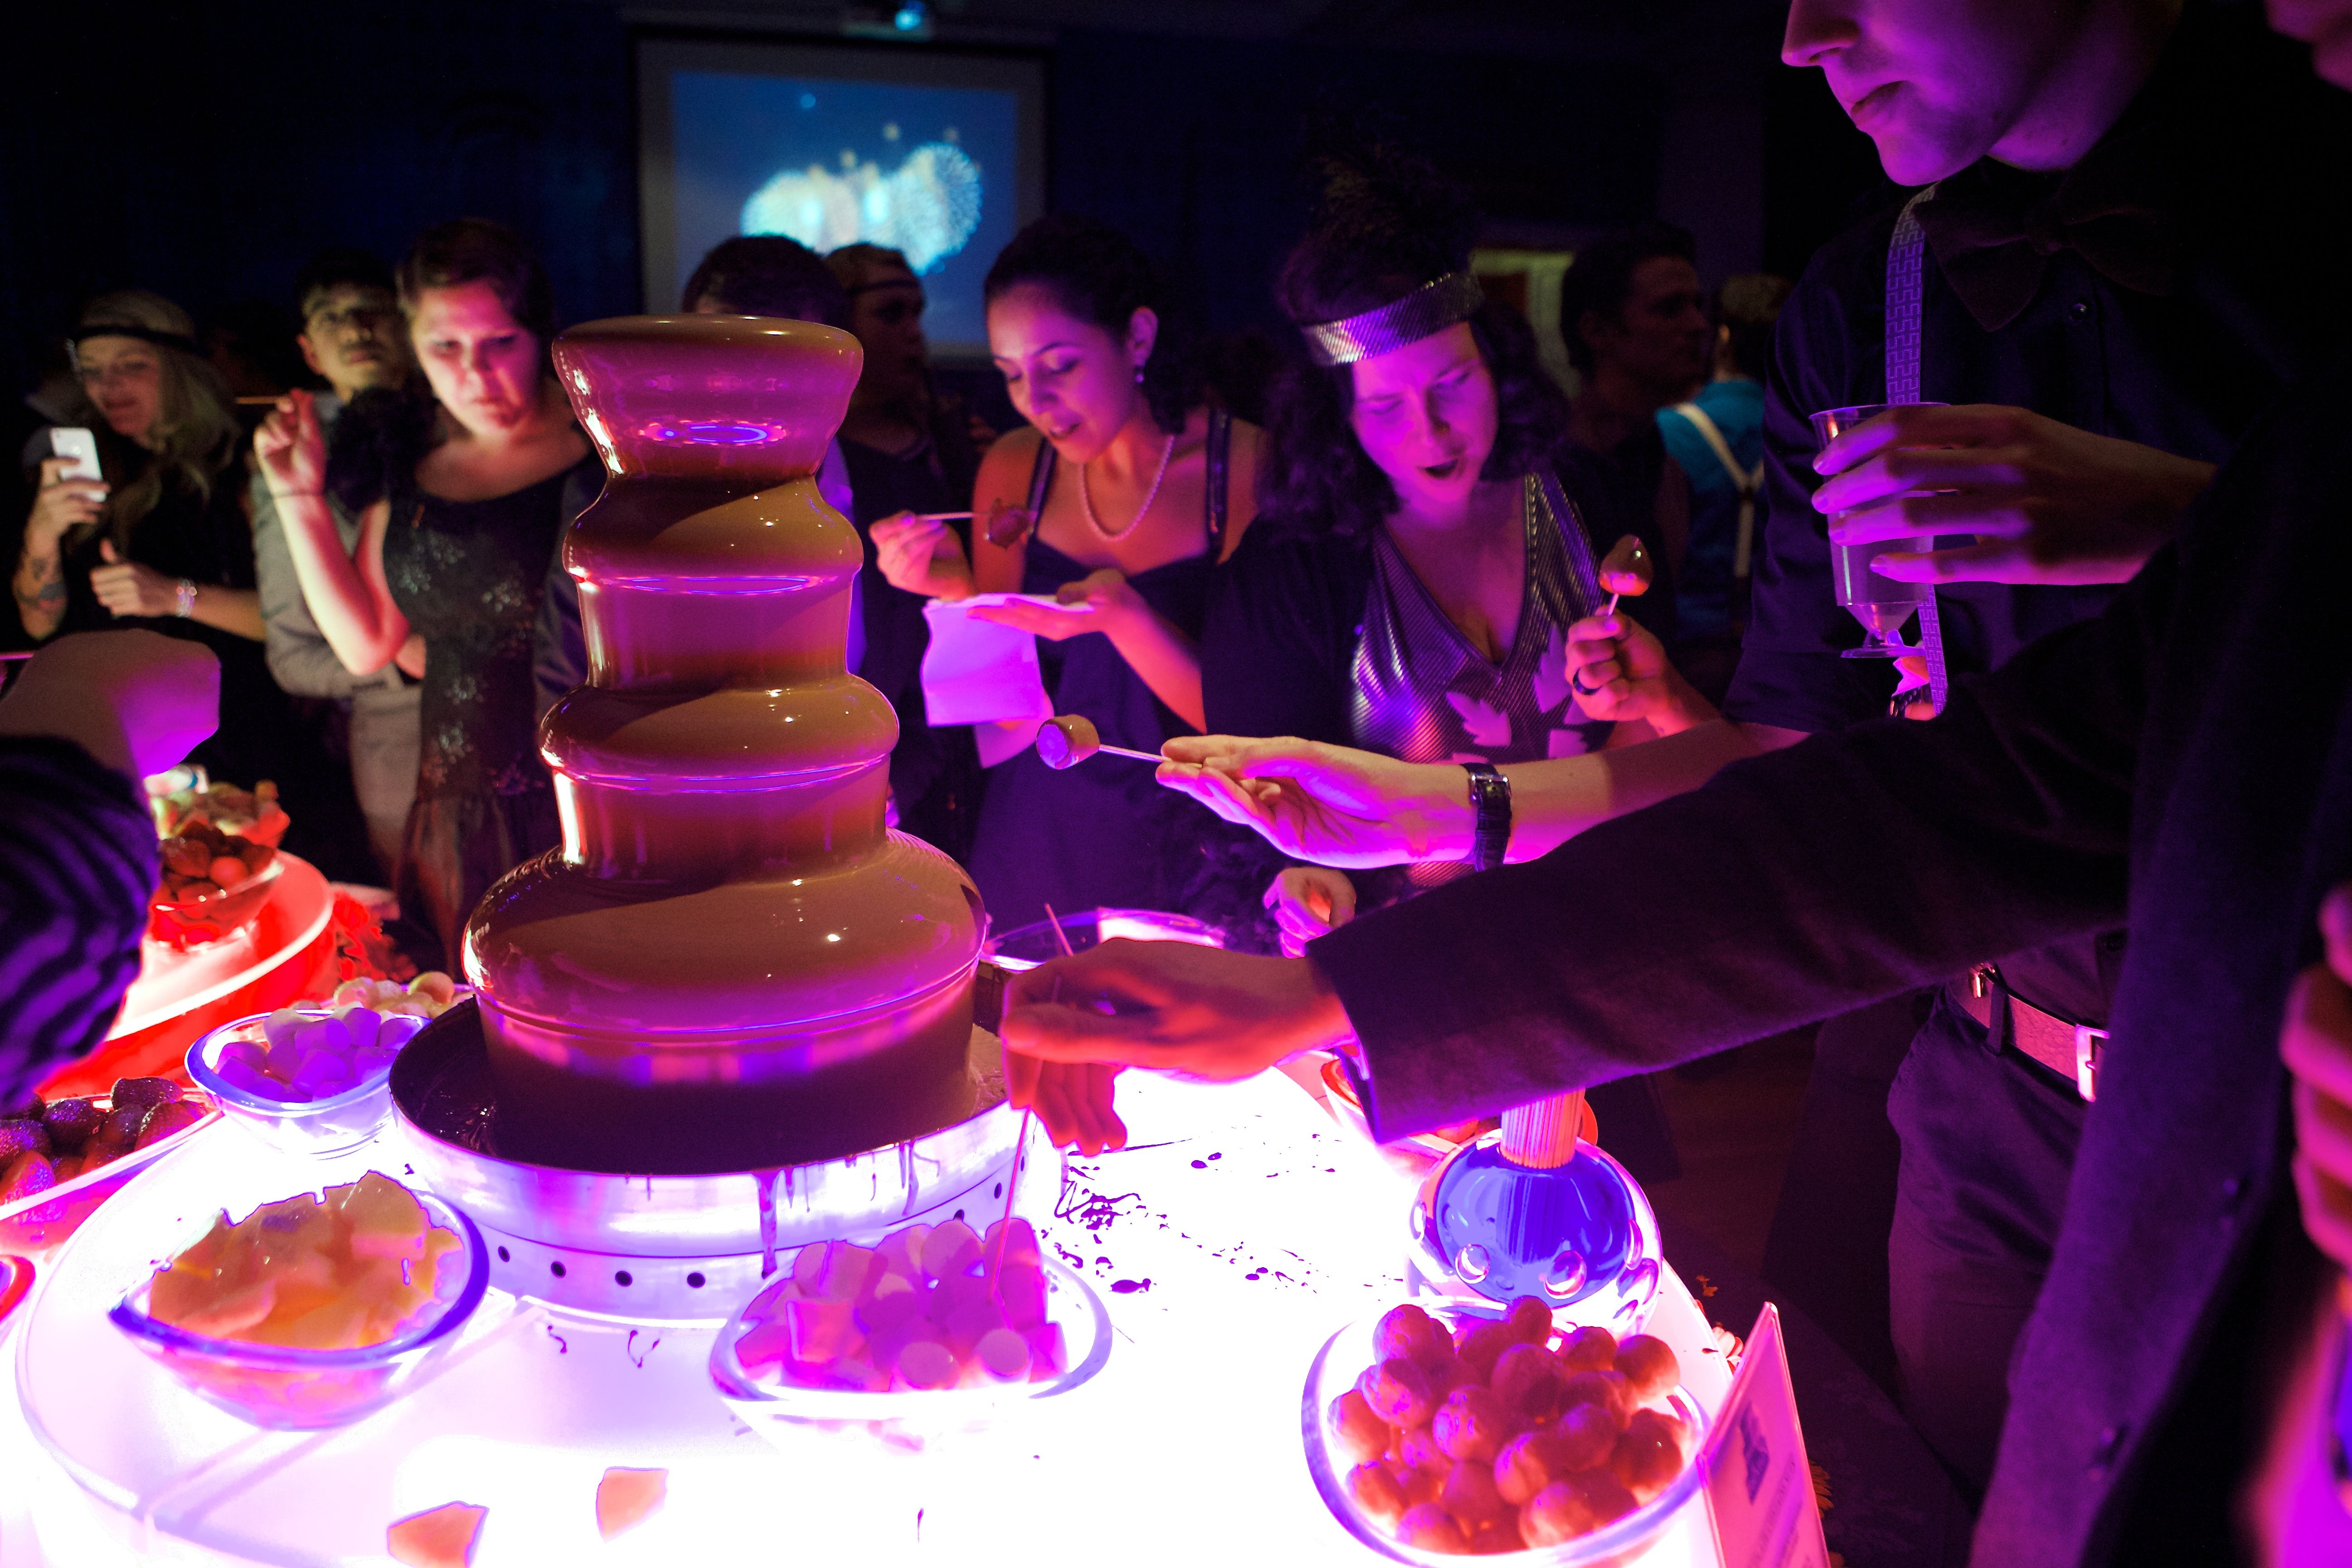 lit up table party ideas pinterest madame tussauds and gatsby